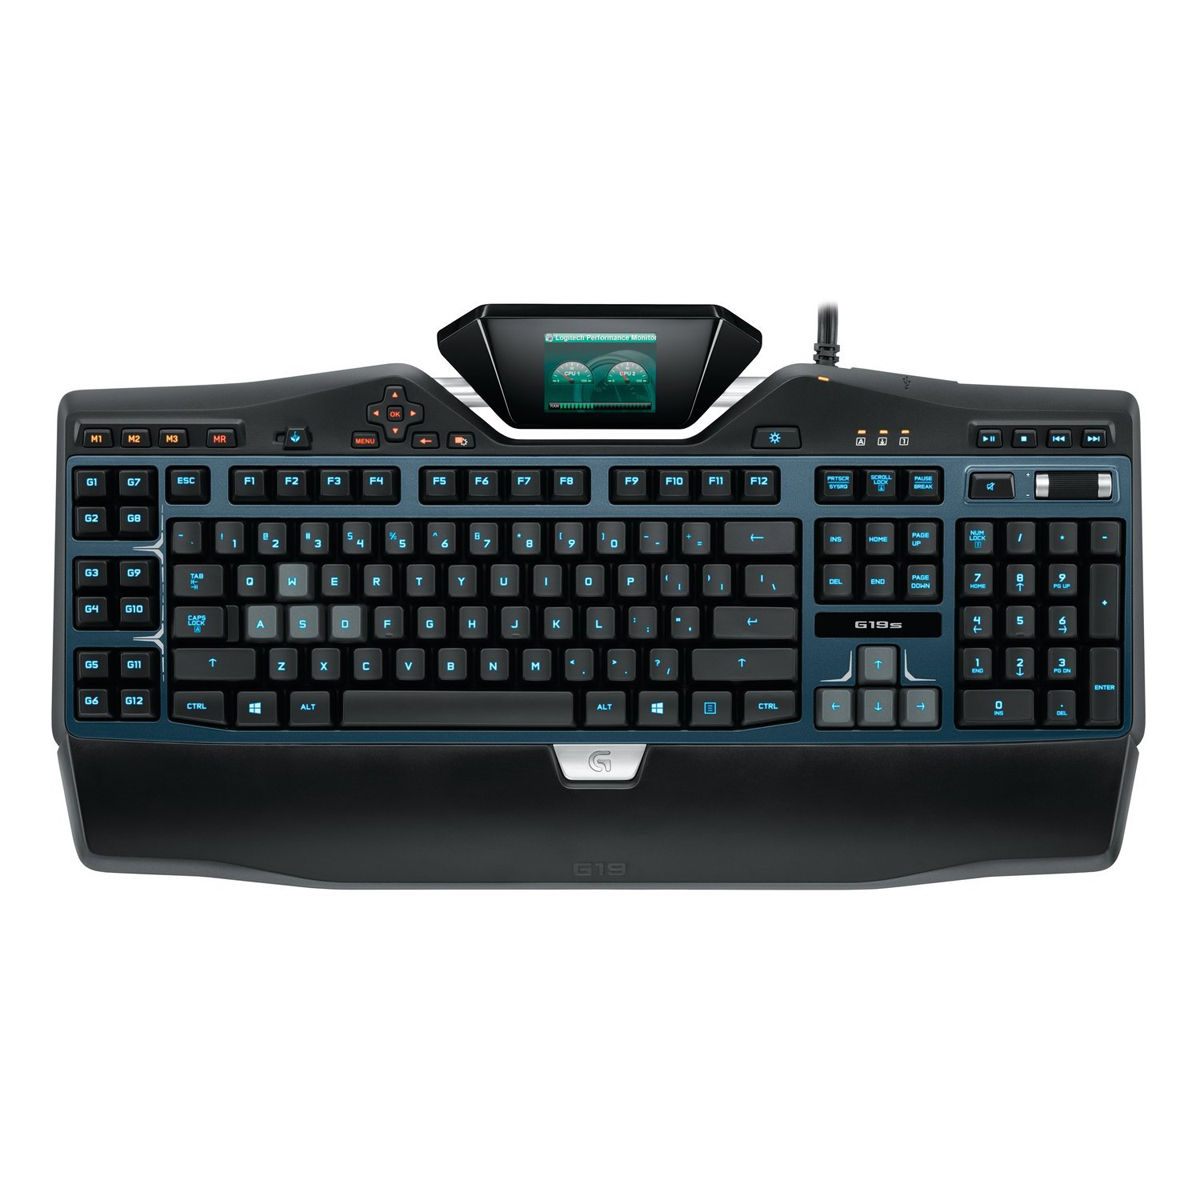 logitech g19s gaming keyboard clavier pc logitech sur. Black Bedroom Furniture Sets. Home Design Ideas